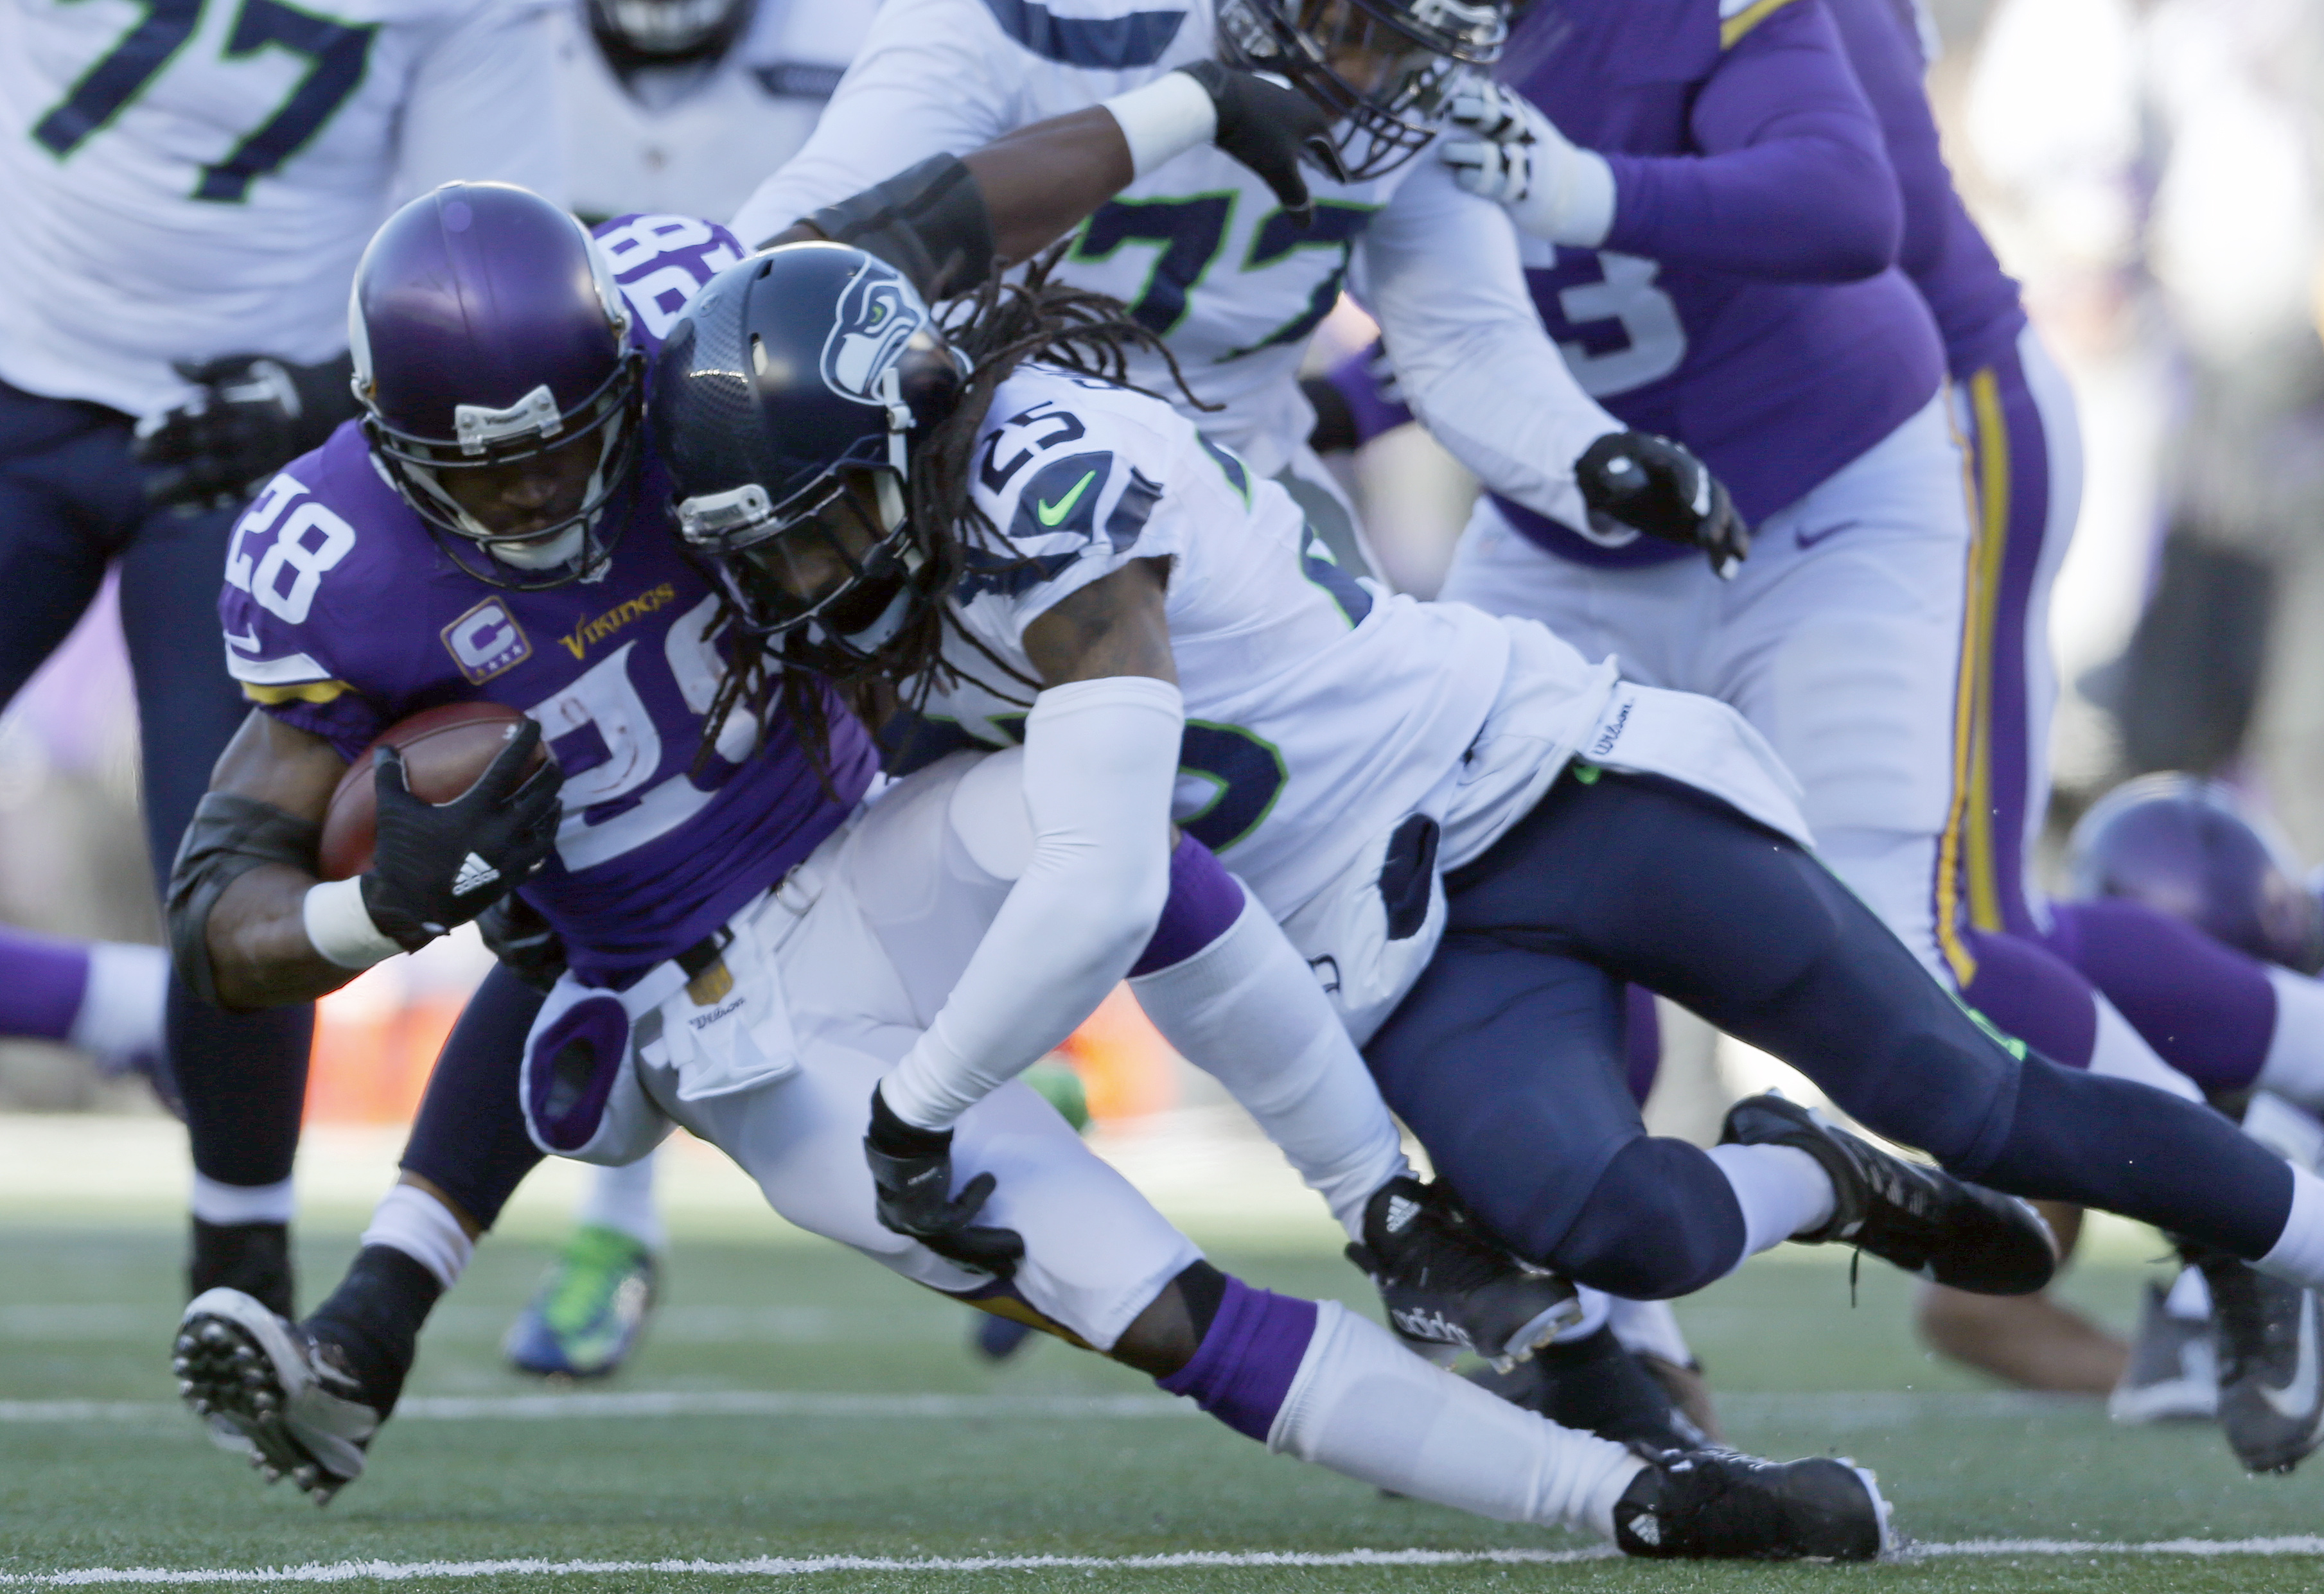 Minnesota Vikings running back Adrian Peterson (28) is tacked by Seattle Seahawks cornerback Richard Sherman (25) during the first half of an NFL wild-card football game, Sunday, Jan. 10, 2016, in Minneapolis. (AP Photo/Kiichiro Sato)